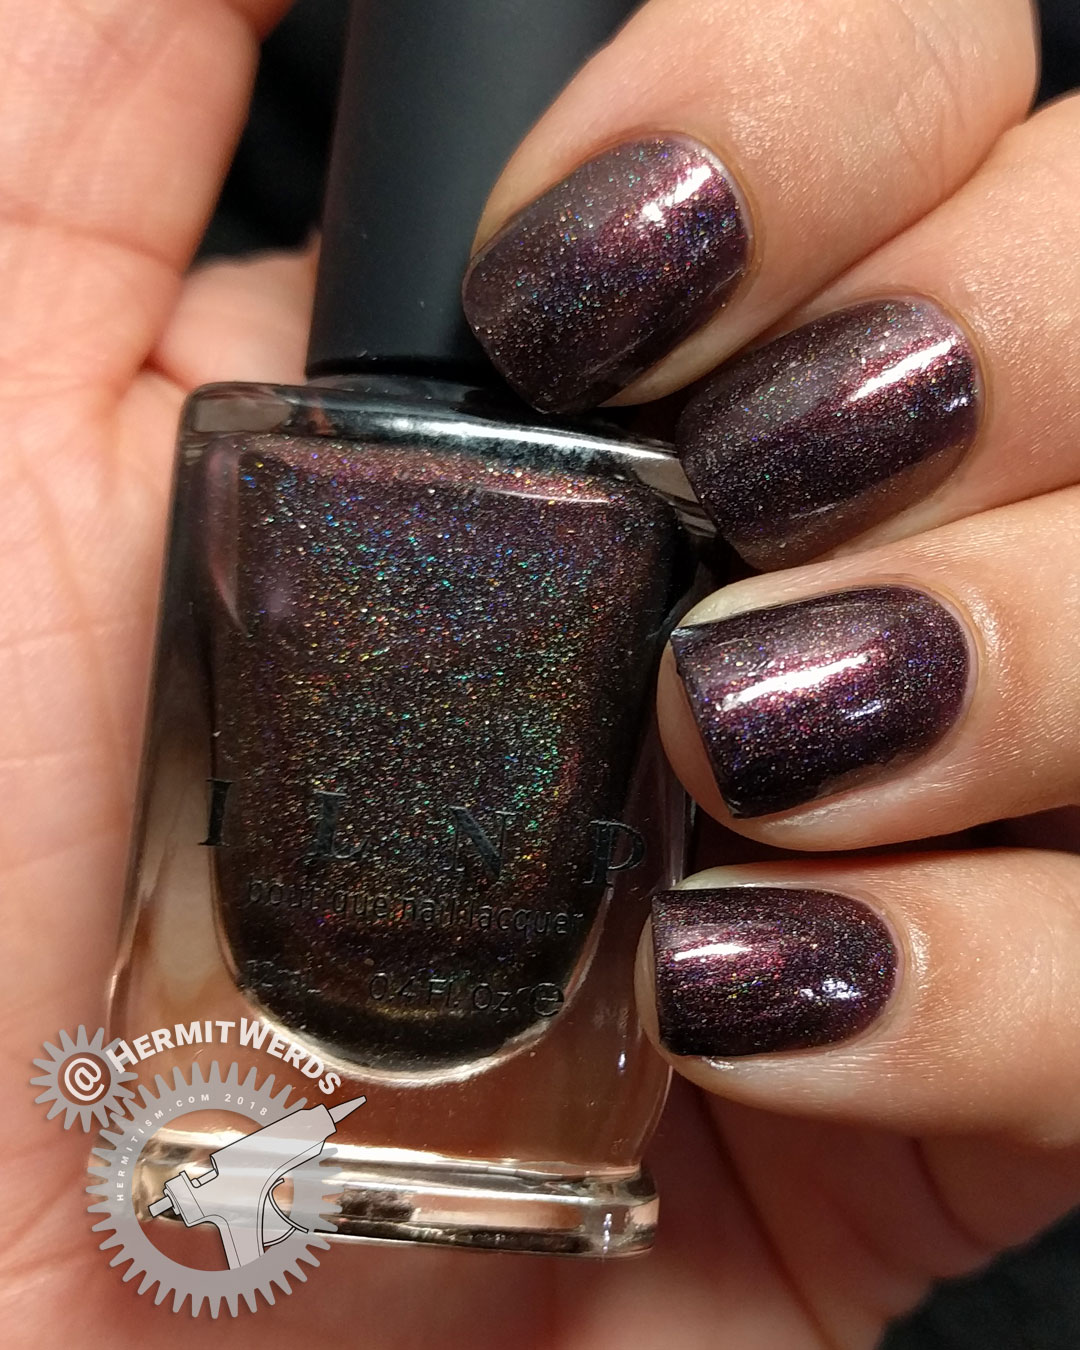 ILNP's Chocolate Slate - Hermit Werds - swatch photo of cool brown scattered holographic polish